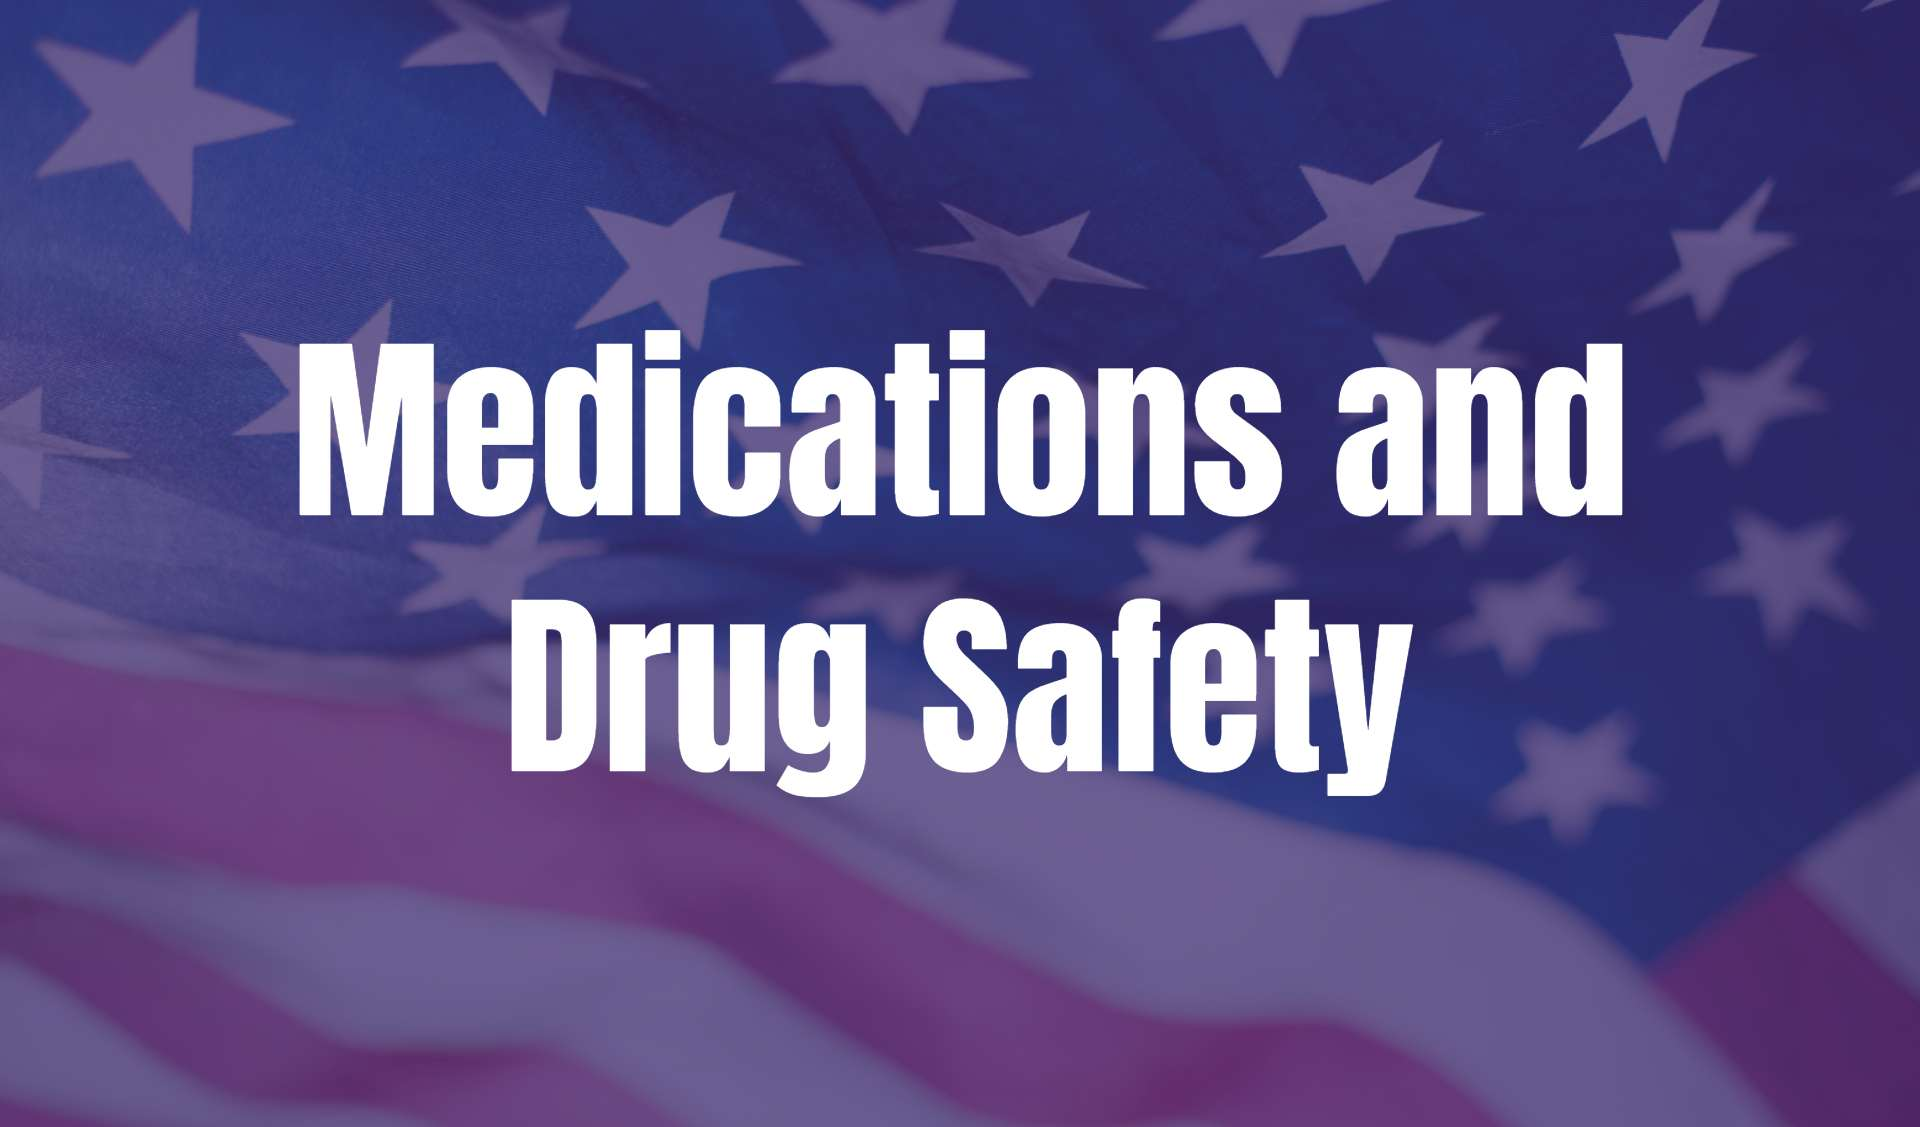 Medications and Drug Safety text on an American flag background